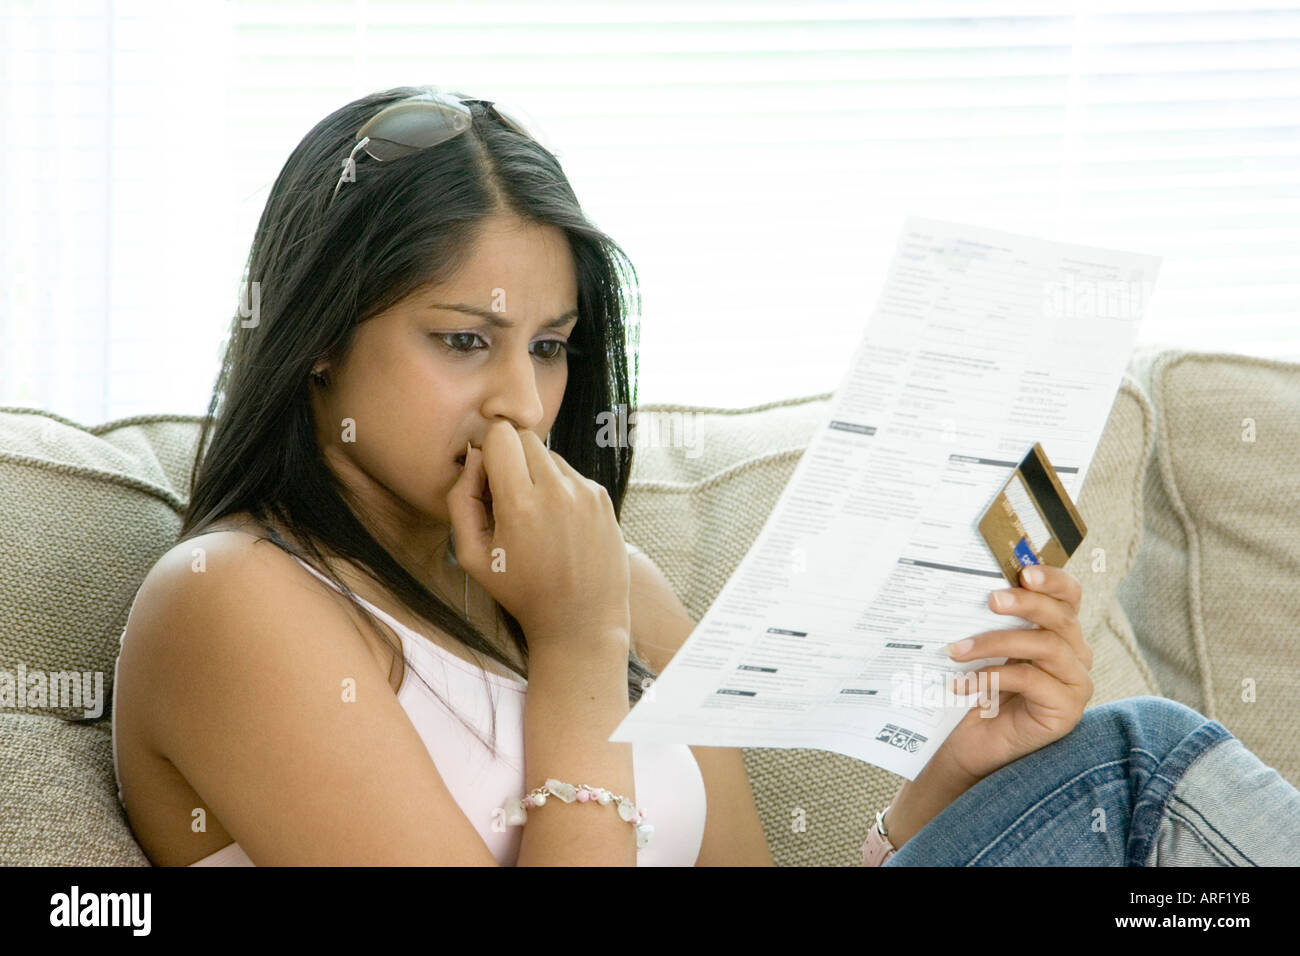 A young woman shocked by her credit card bill - Stock Image